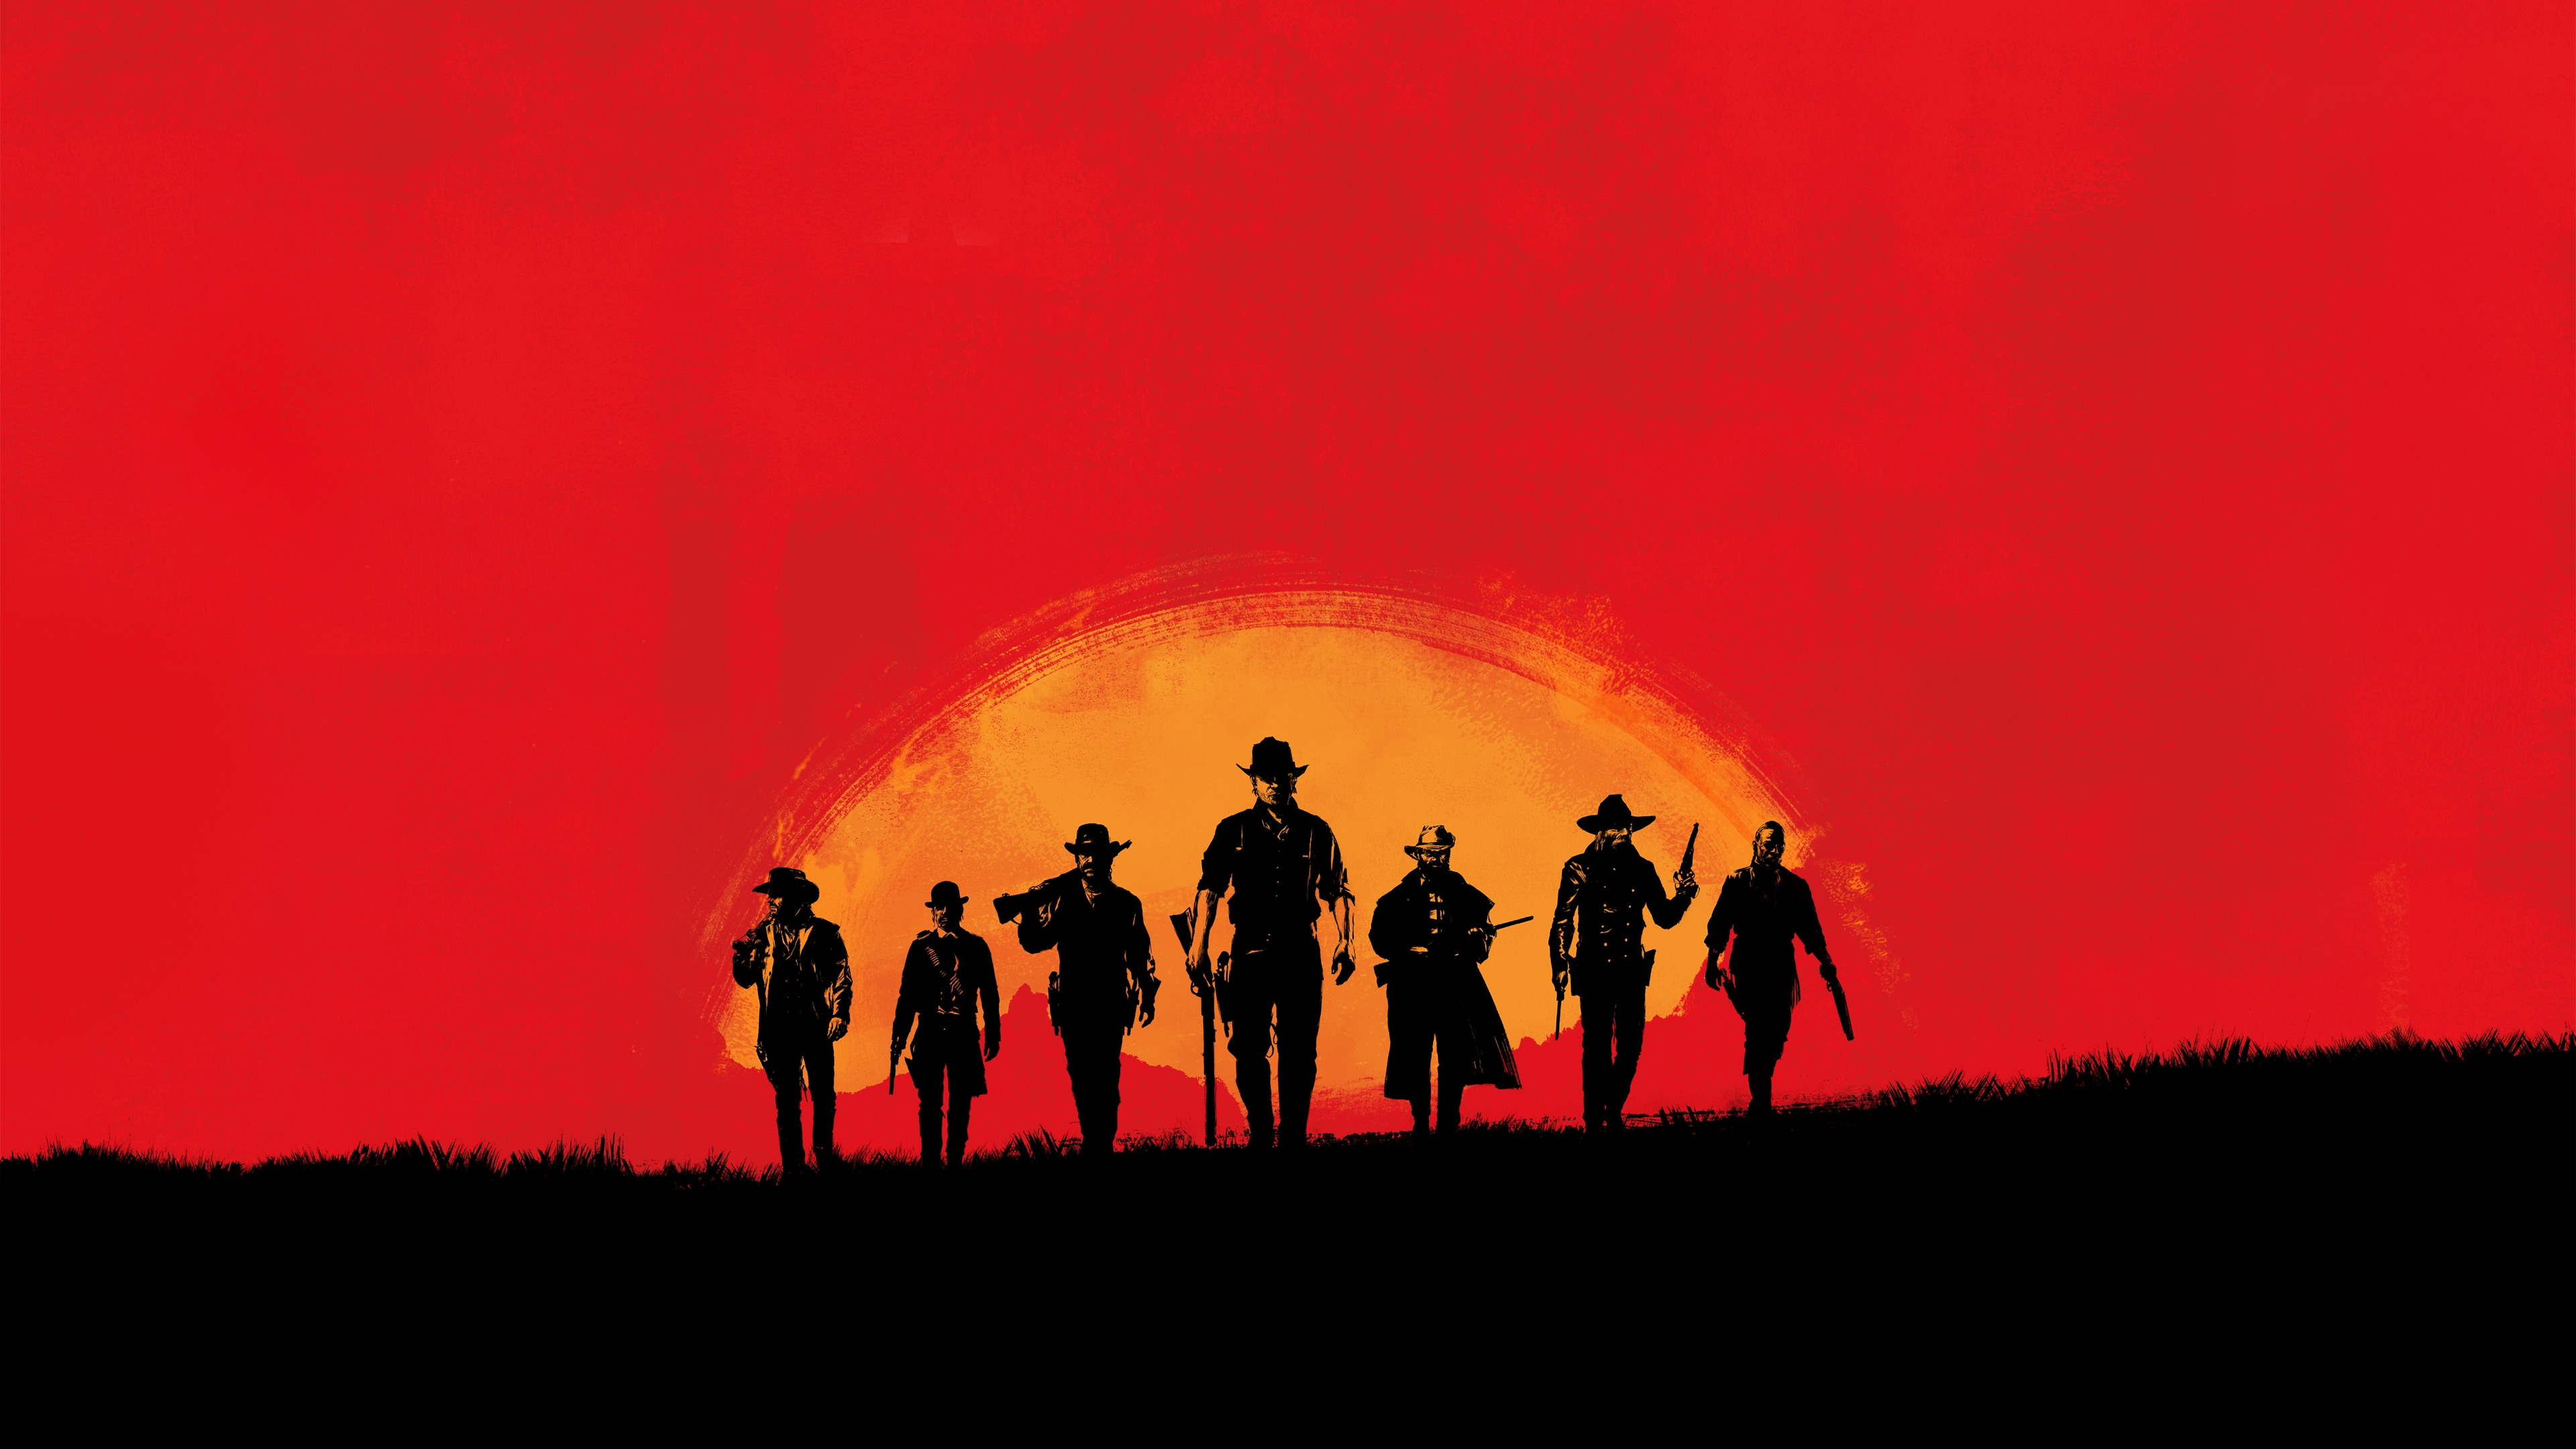 Wallpaper Characters Red Dead Redemption 2